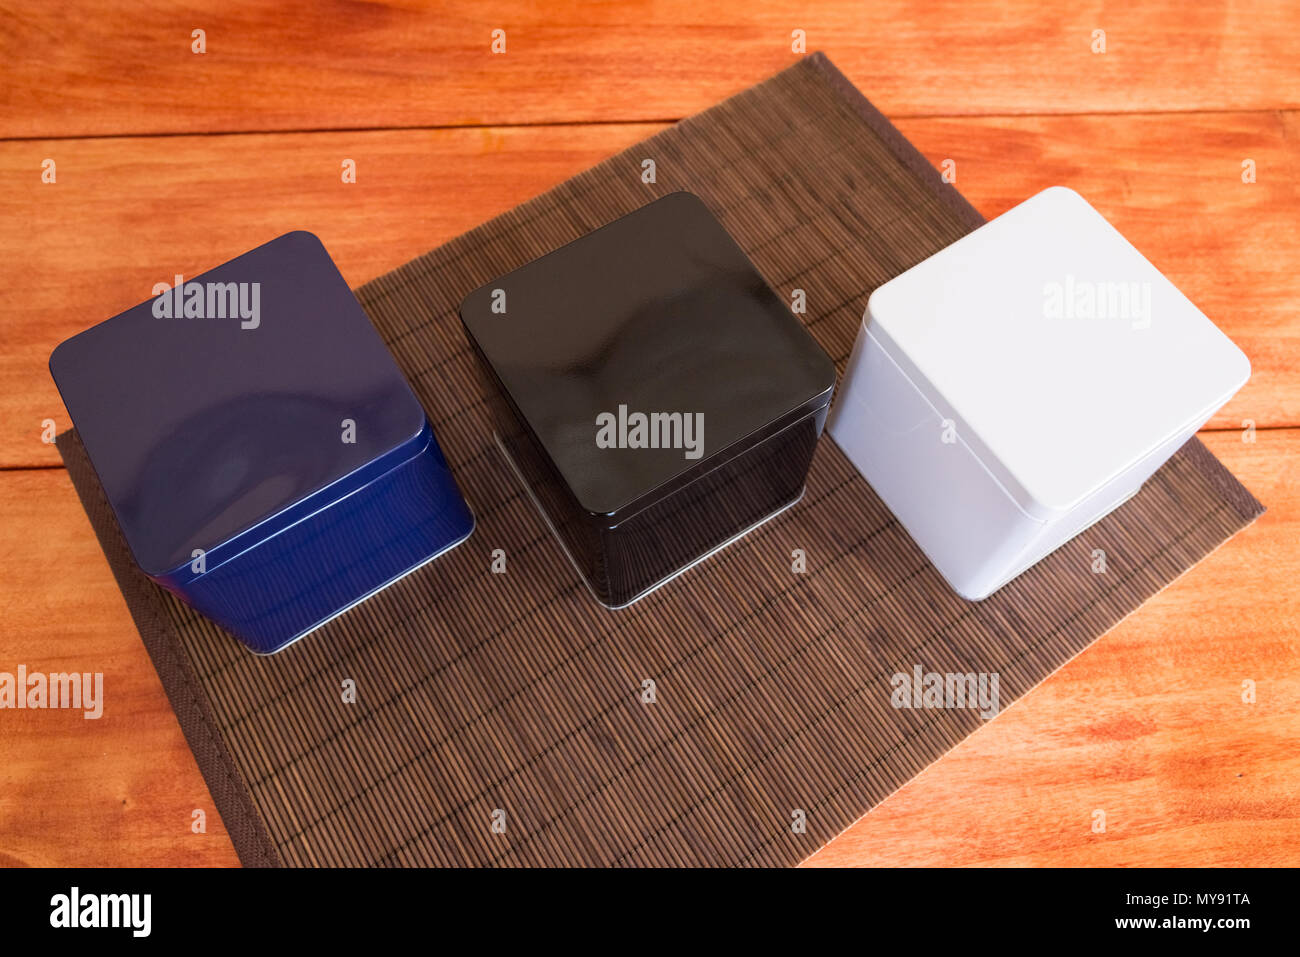 Three colorful metal boxes stand on a bamboo napkin,view from above - Stock Image